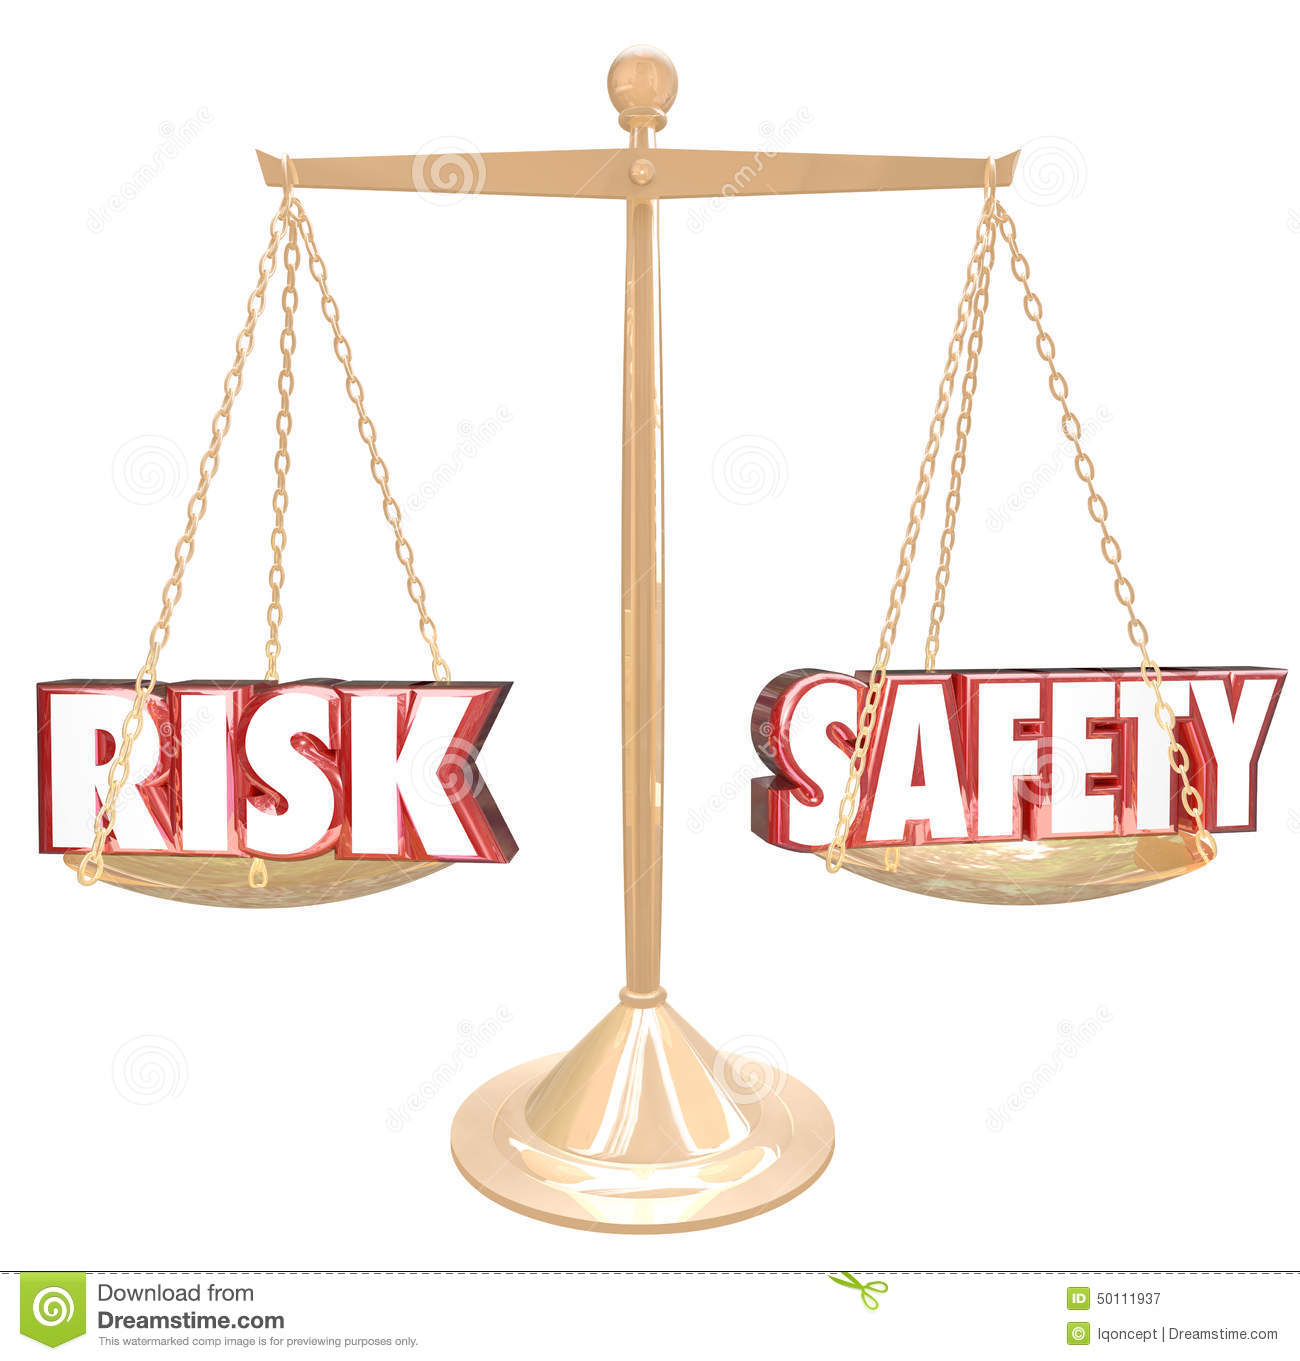 risk clipart - photo #37